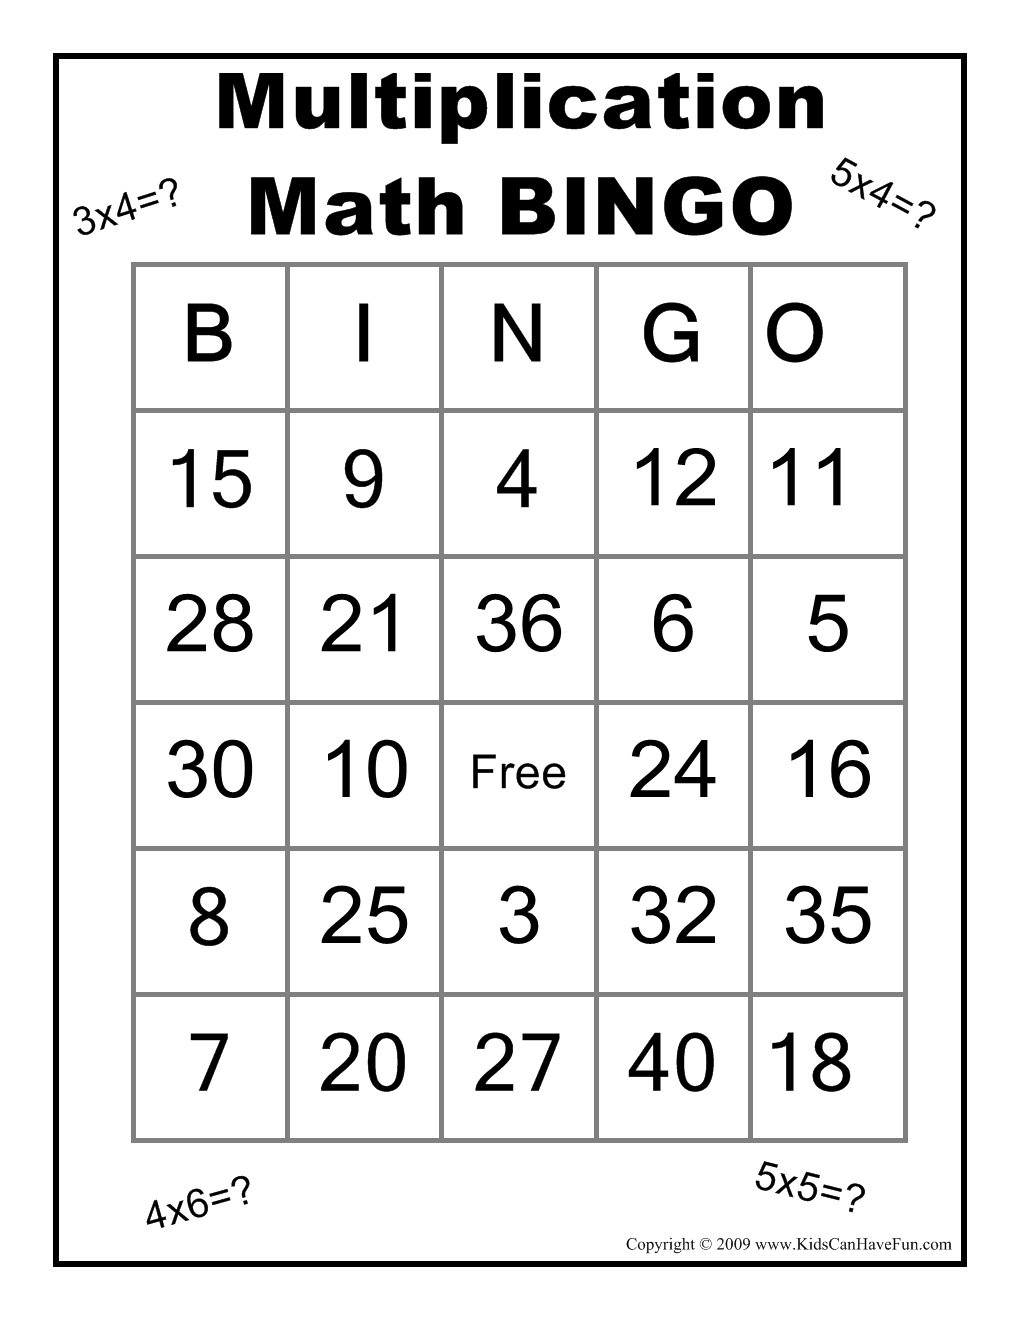 Uncategorized Math Games Worksheets free printable math games for middle school aprita com multiplication bingo game httpwww kidscanhavefun com